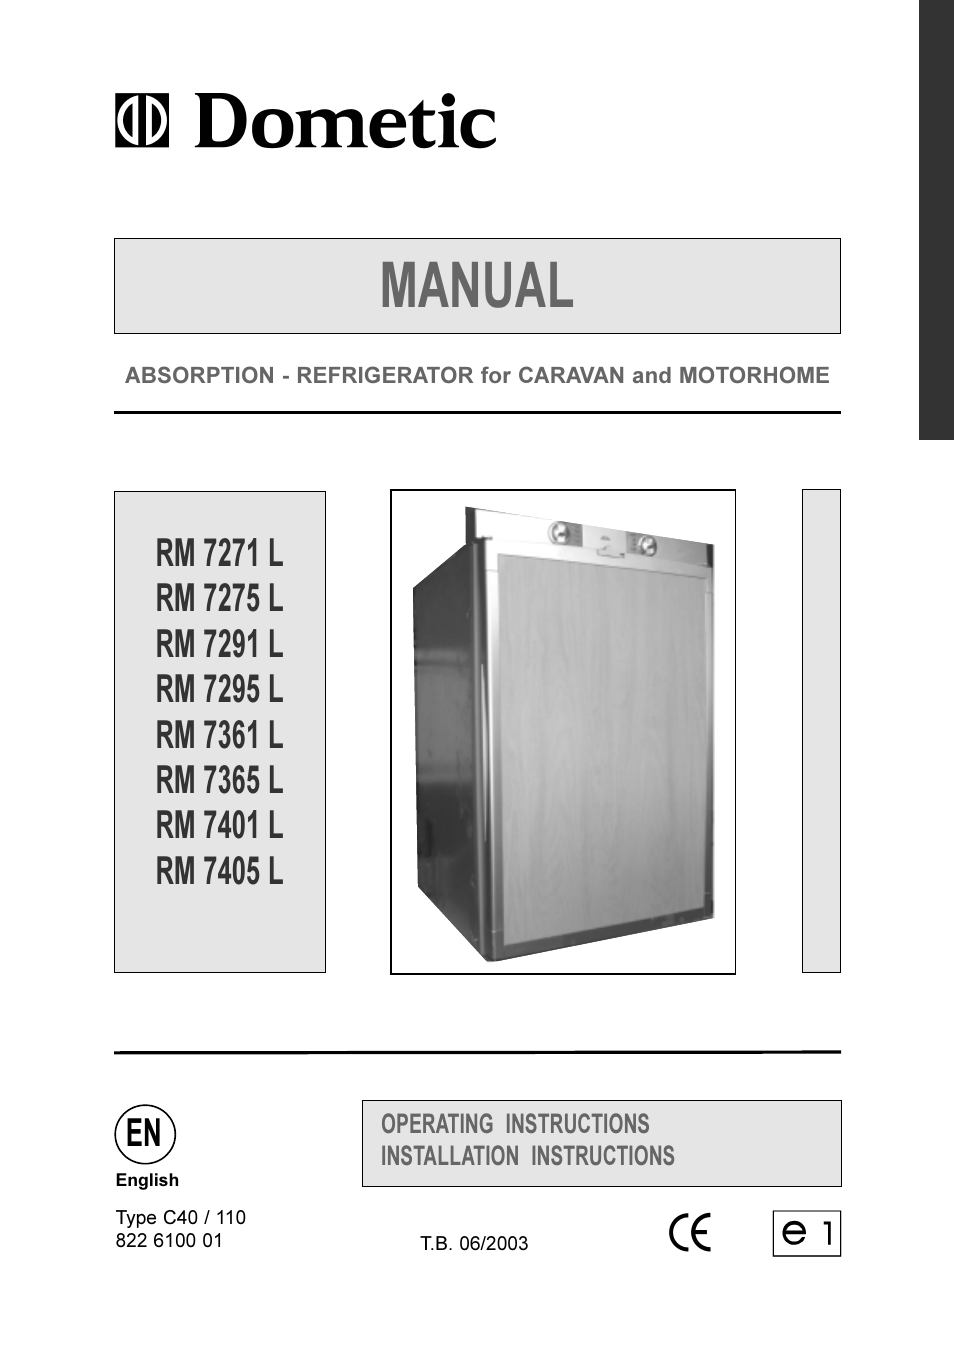 Dometic RM 7401 L User Manual  30 pages  Also for RM 7405 L RM 7291 L RM 7365 L RM 7295 L